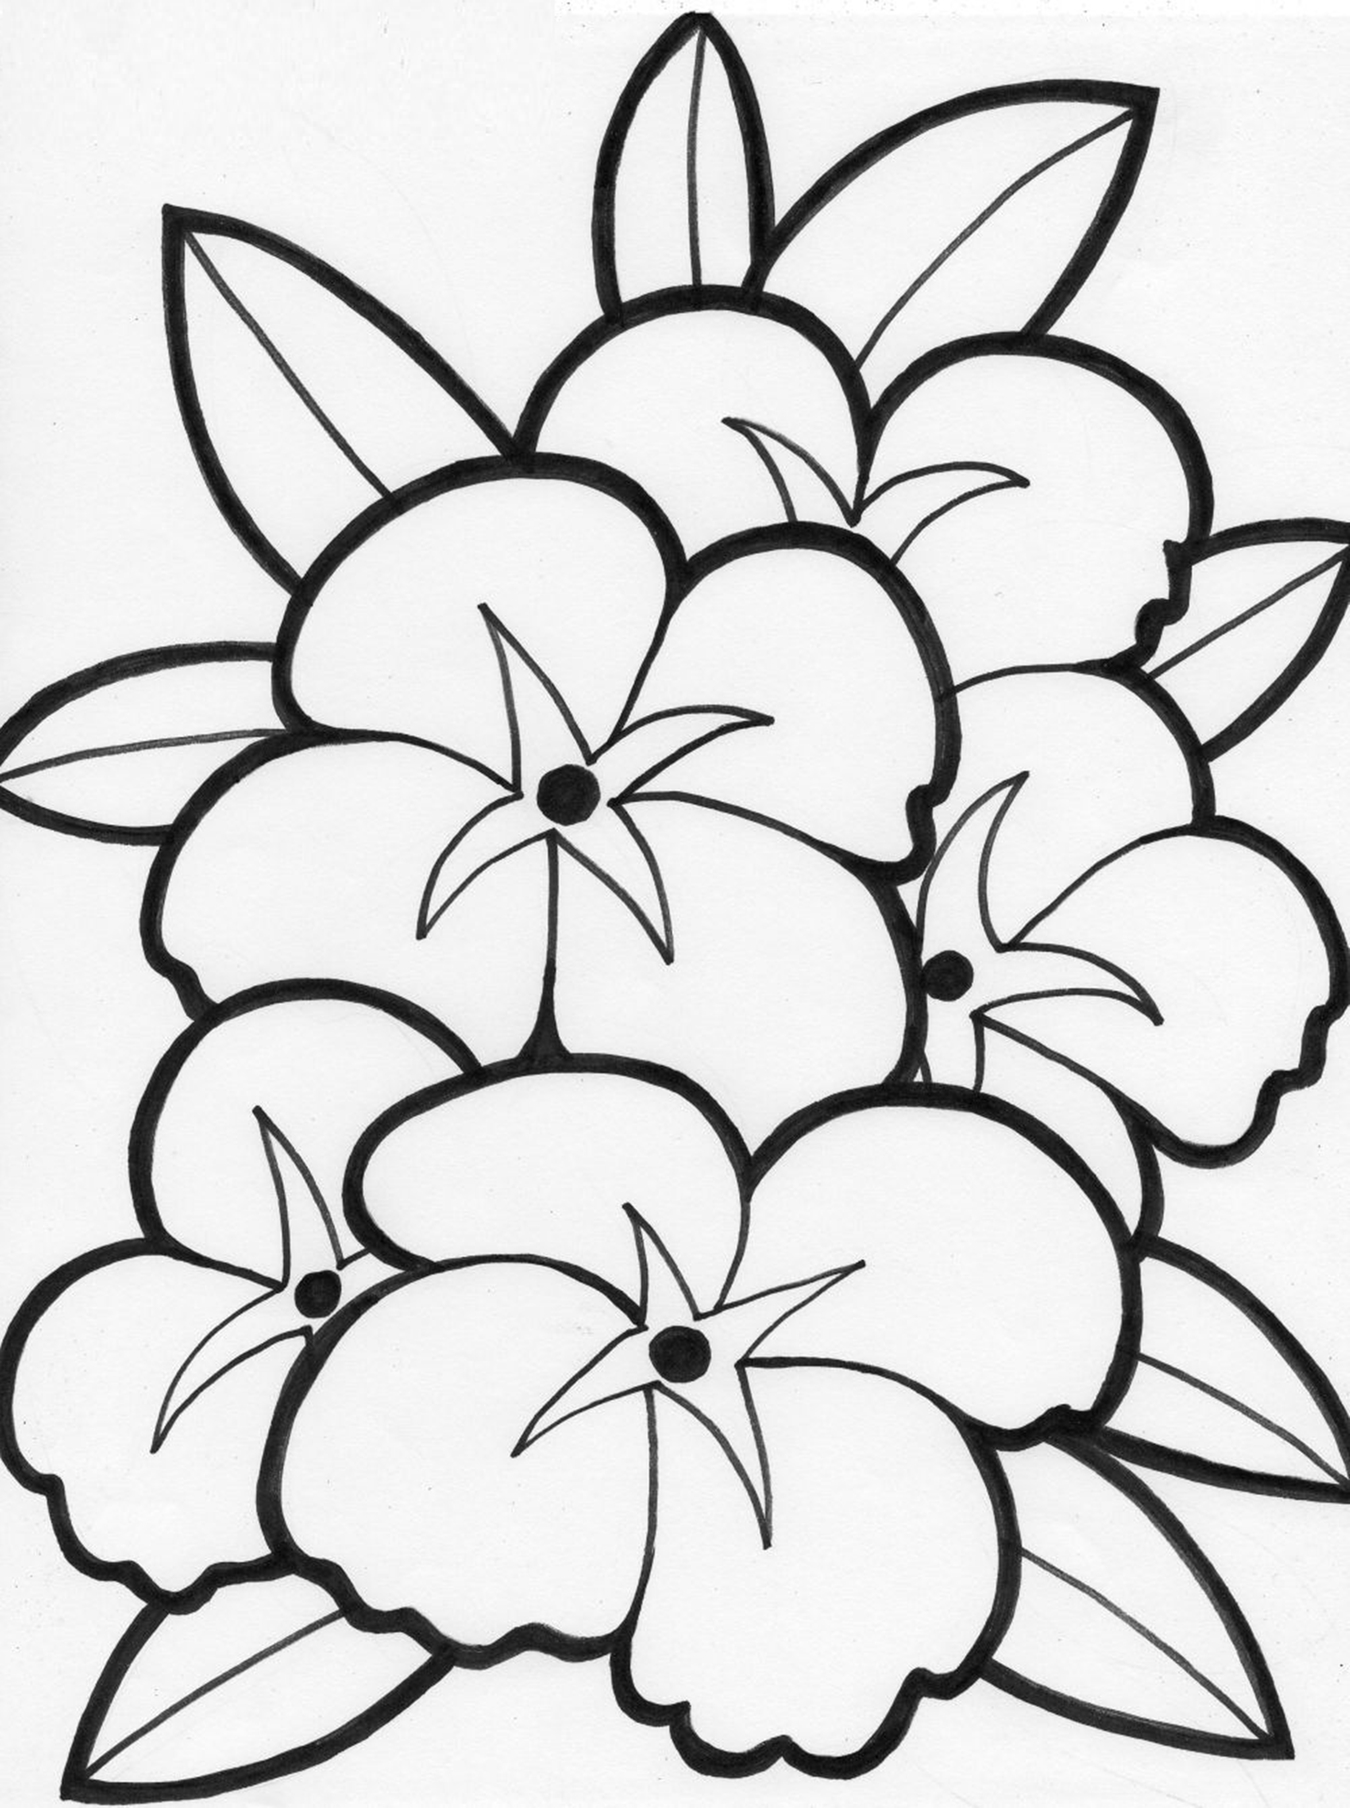 Colouring in pictures of flowers - Download Flower Coloring Pages